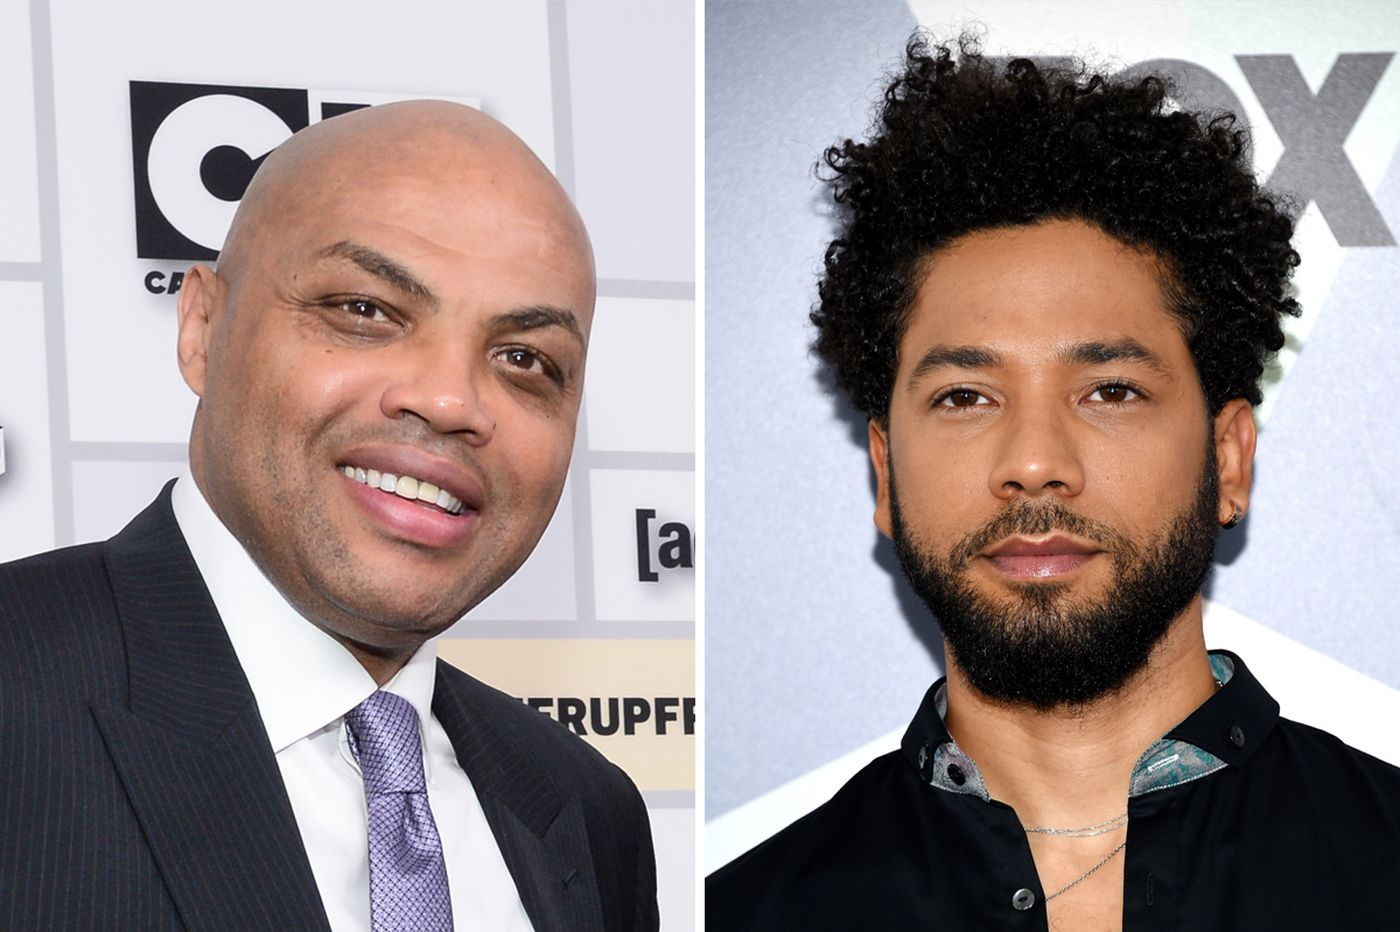 Charles Barkley's comments on Jussie Smollett controversy go viral